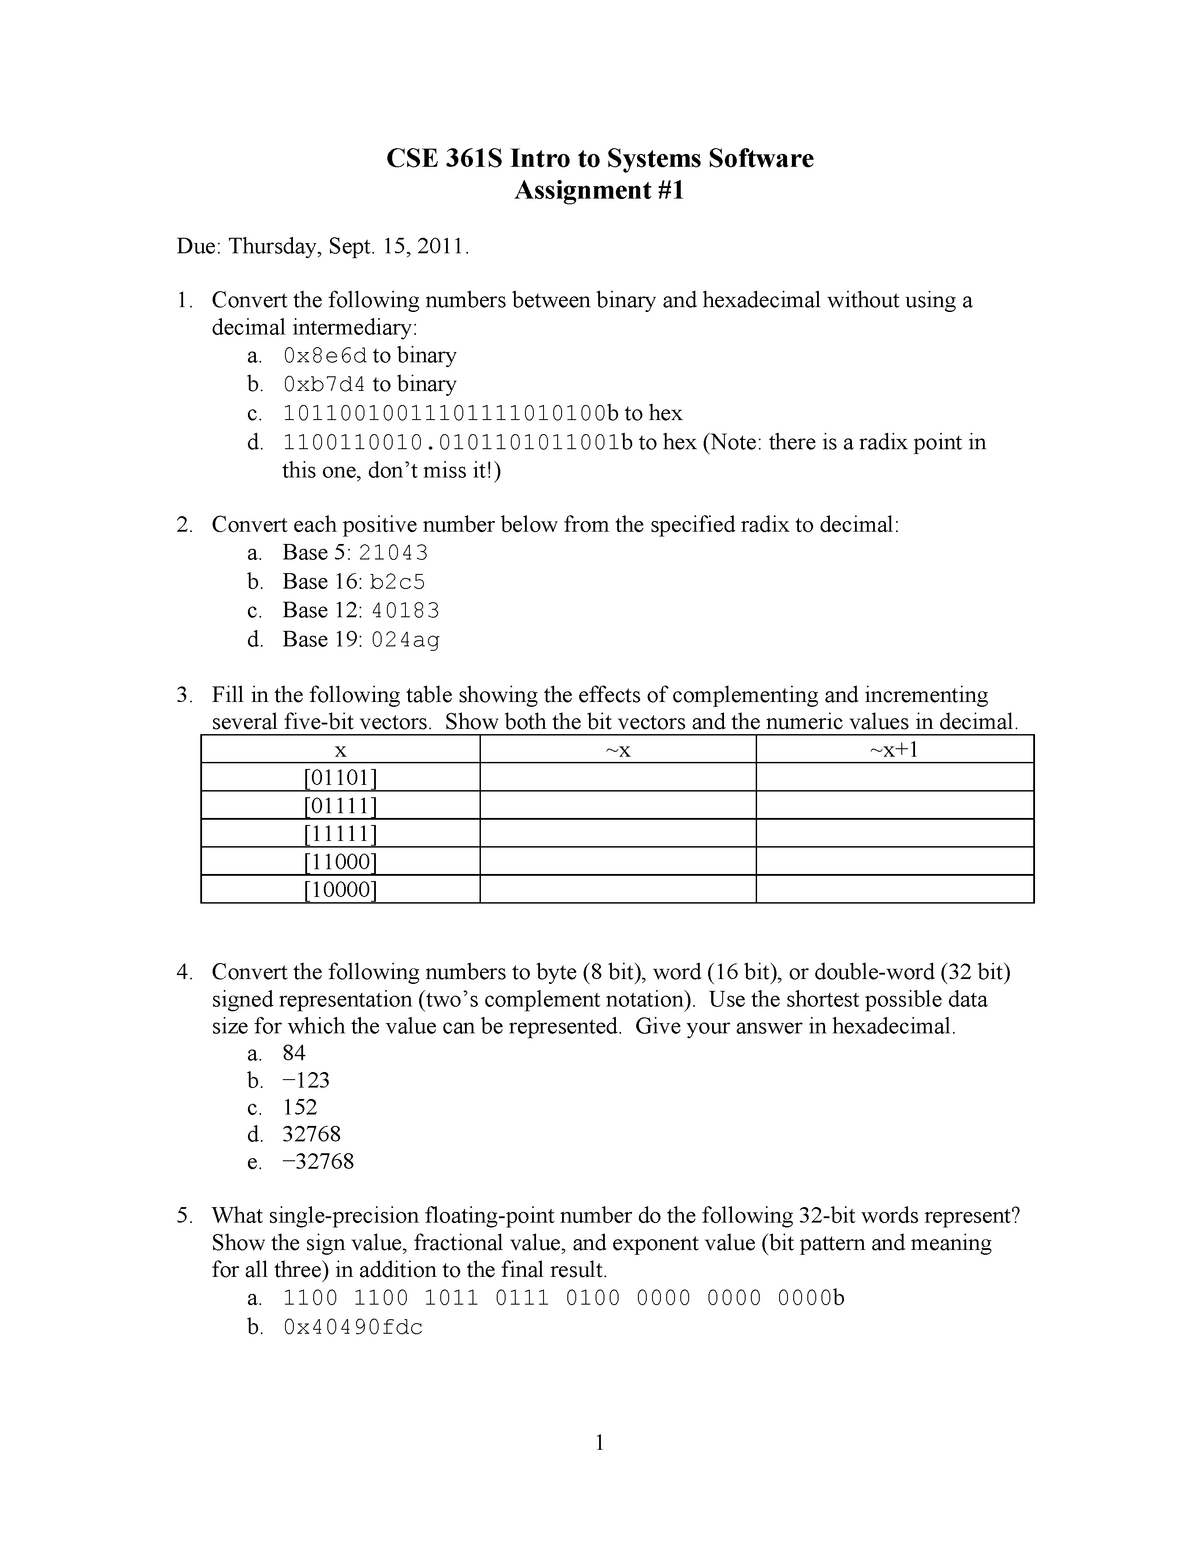 CSE361S 2011-2012 Assignment 1 - E81 361S: Introduction To